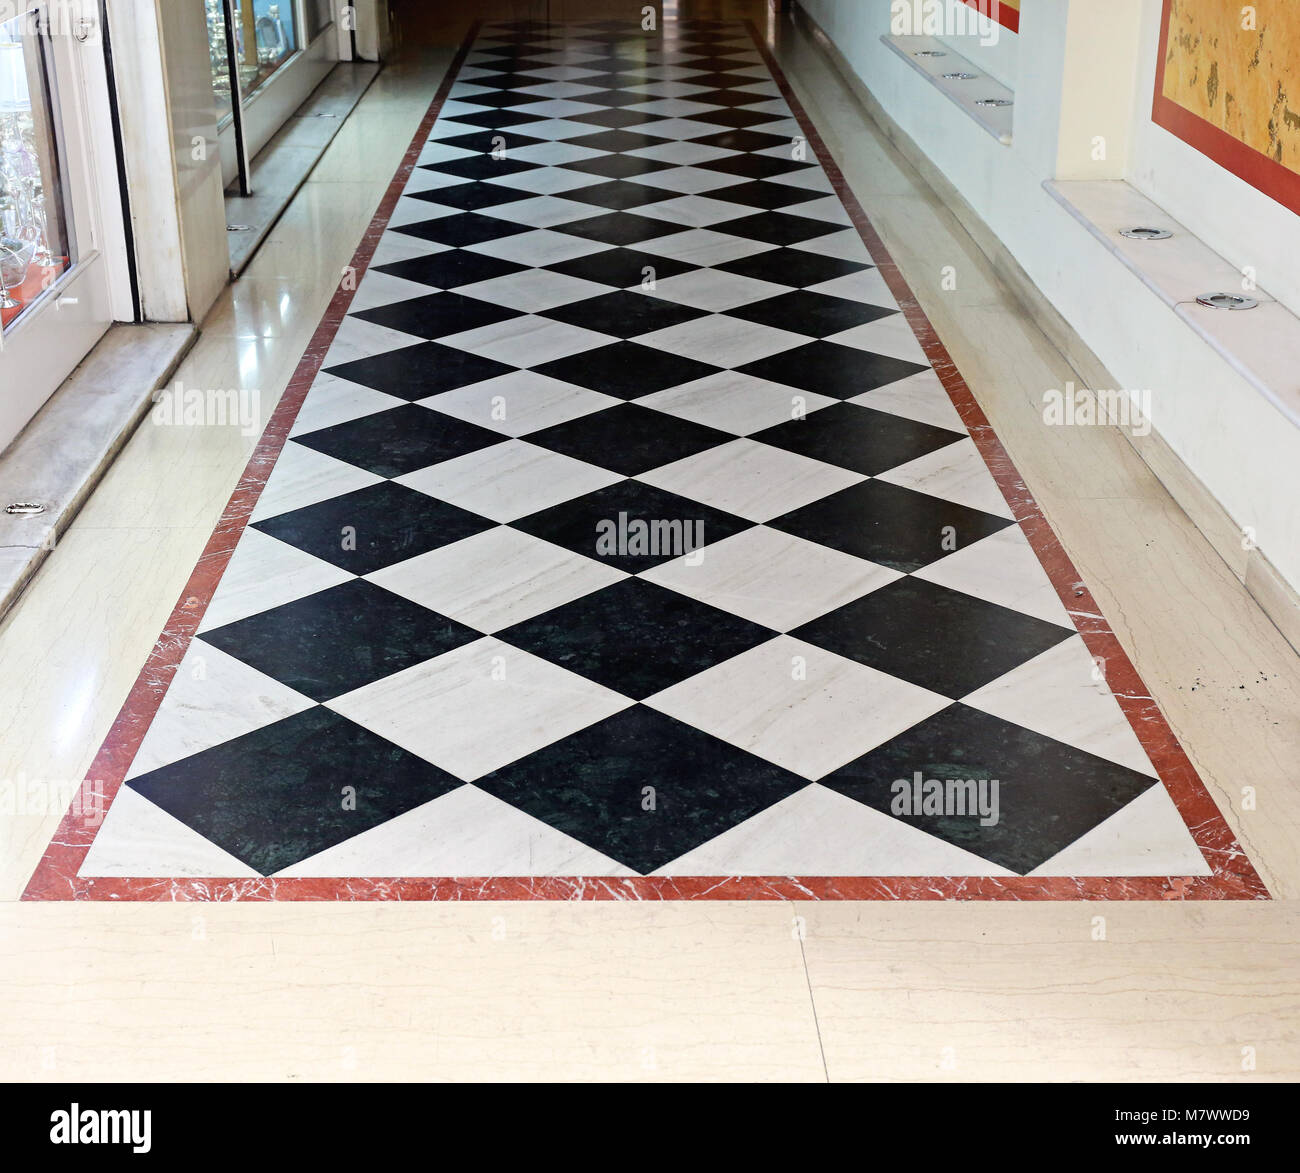 Checkered Floor Stock Photos Amp Checkered Floor Stock